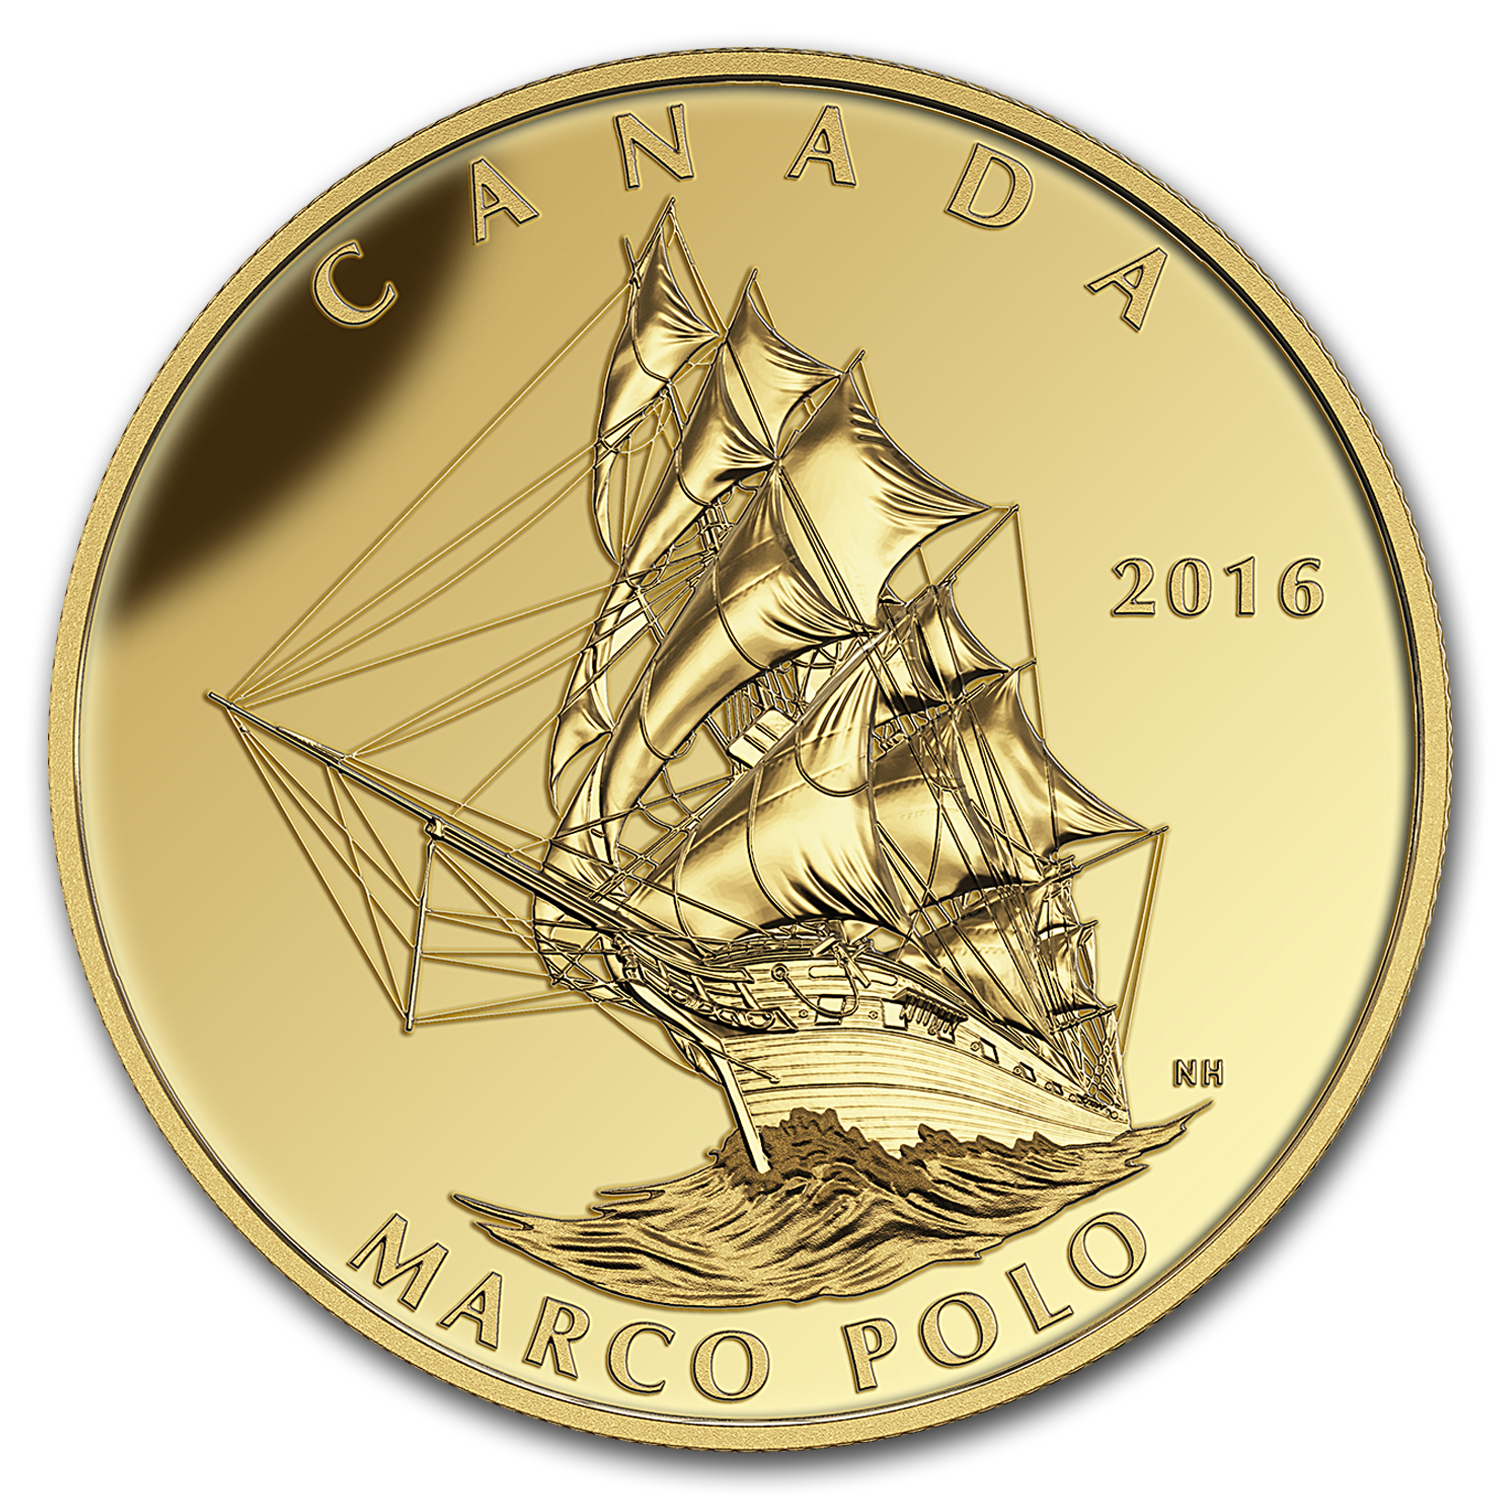 2016 Canada 1 oz Proof Gold $200 Tall Ships: Marco Polo